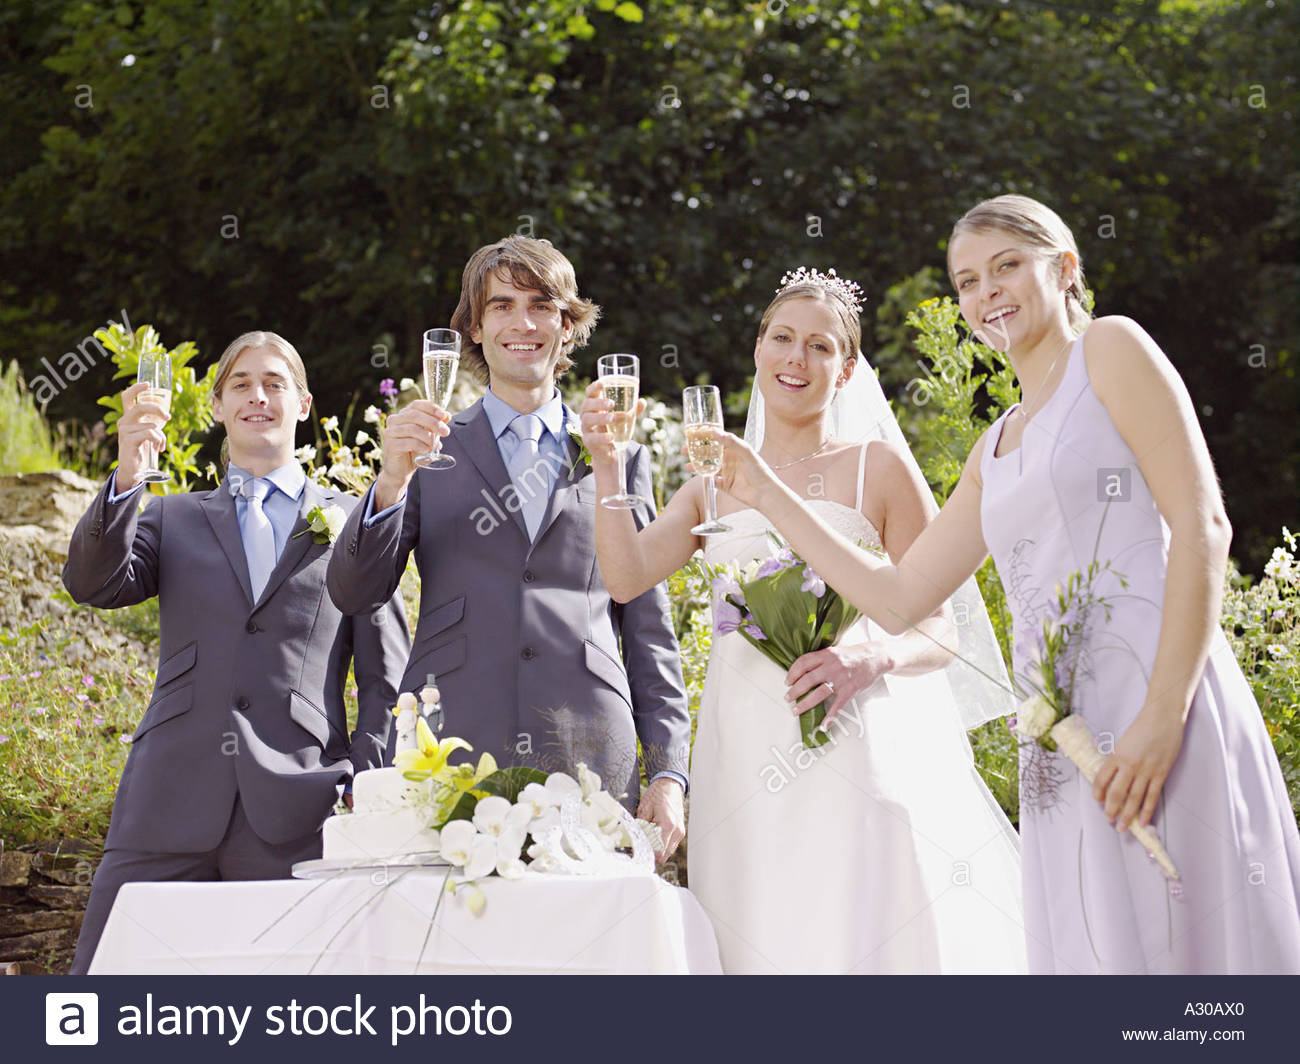 Bride and groom toasting with guests - Stock Image